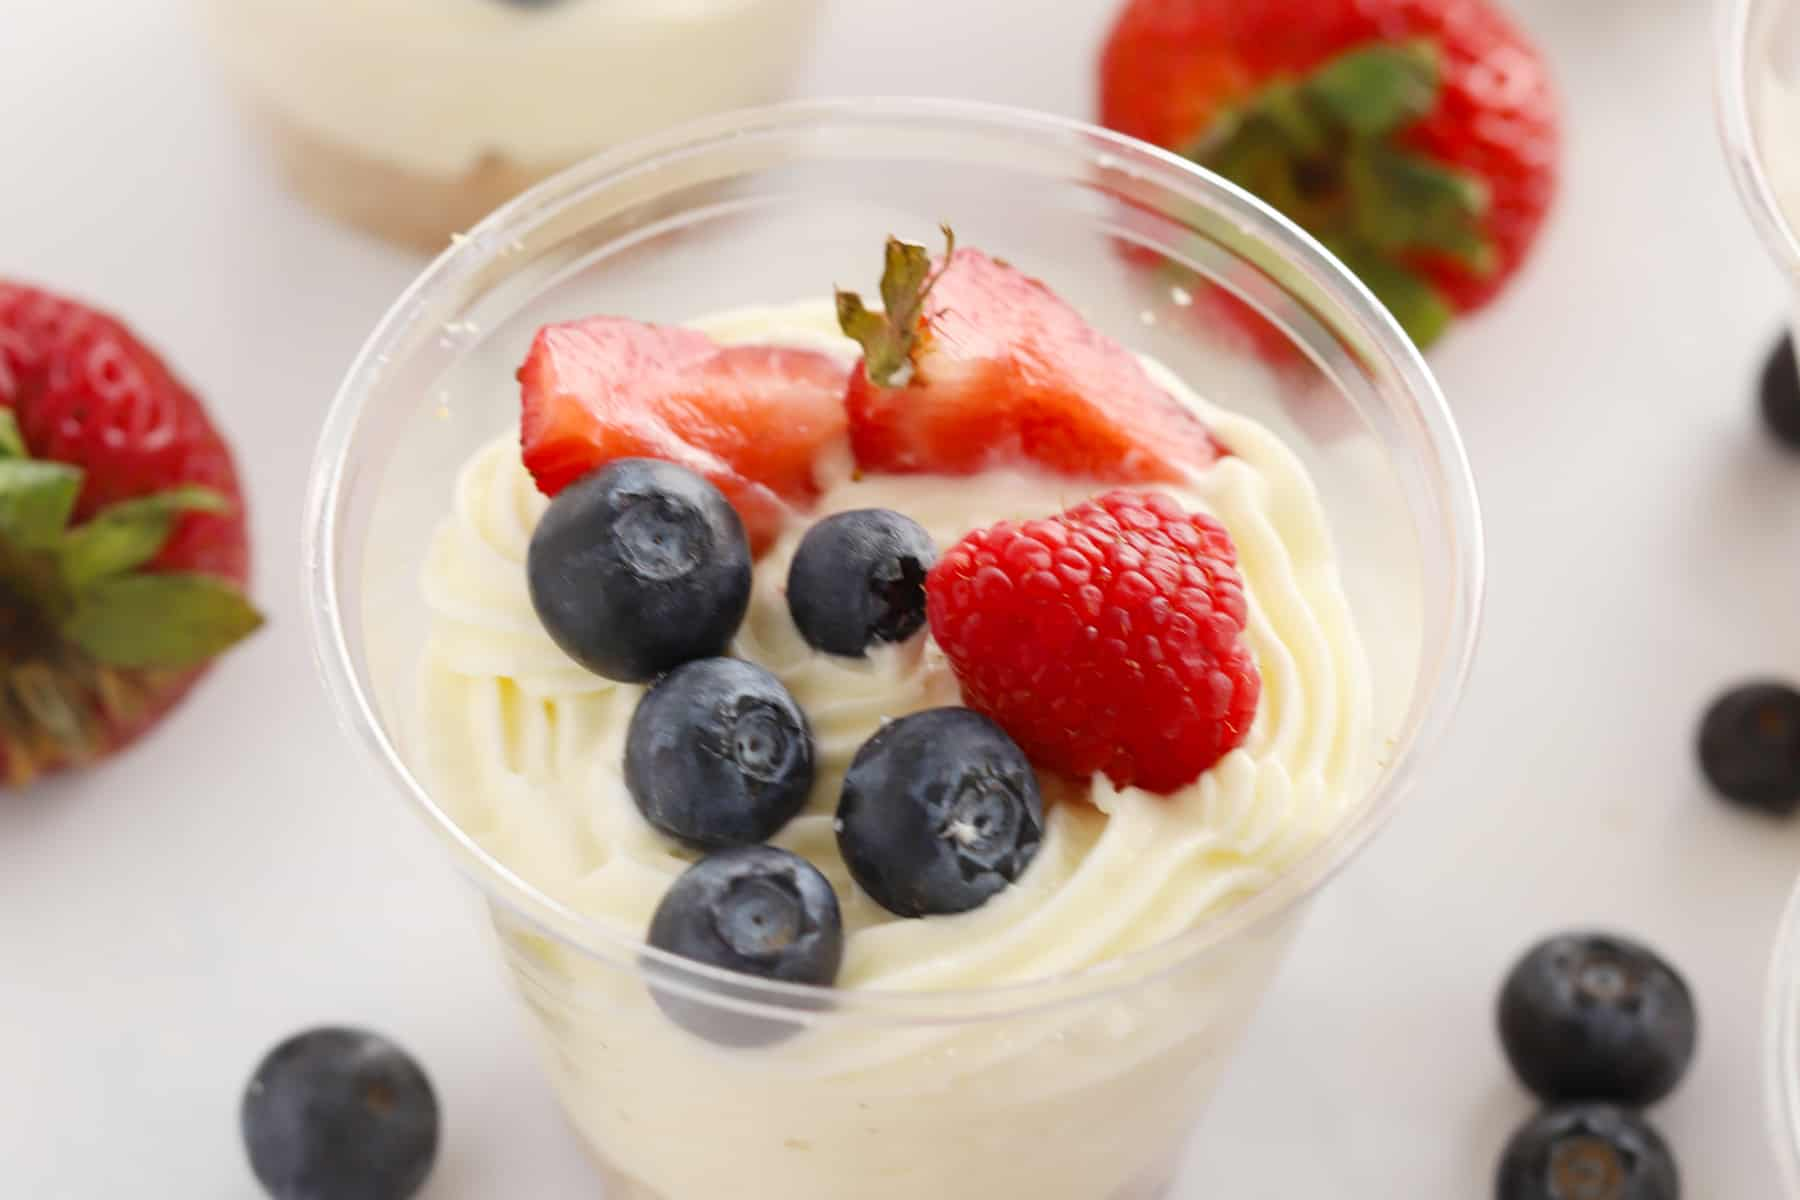 A close-up photo of no-bake cheesecake in a plastic cup topped with fresh strawberries, raspberries and blueberries.